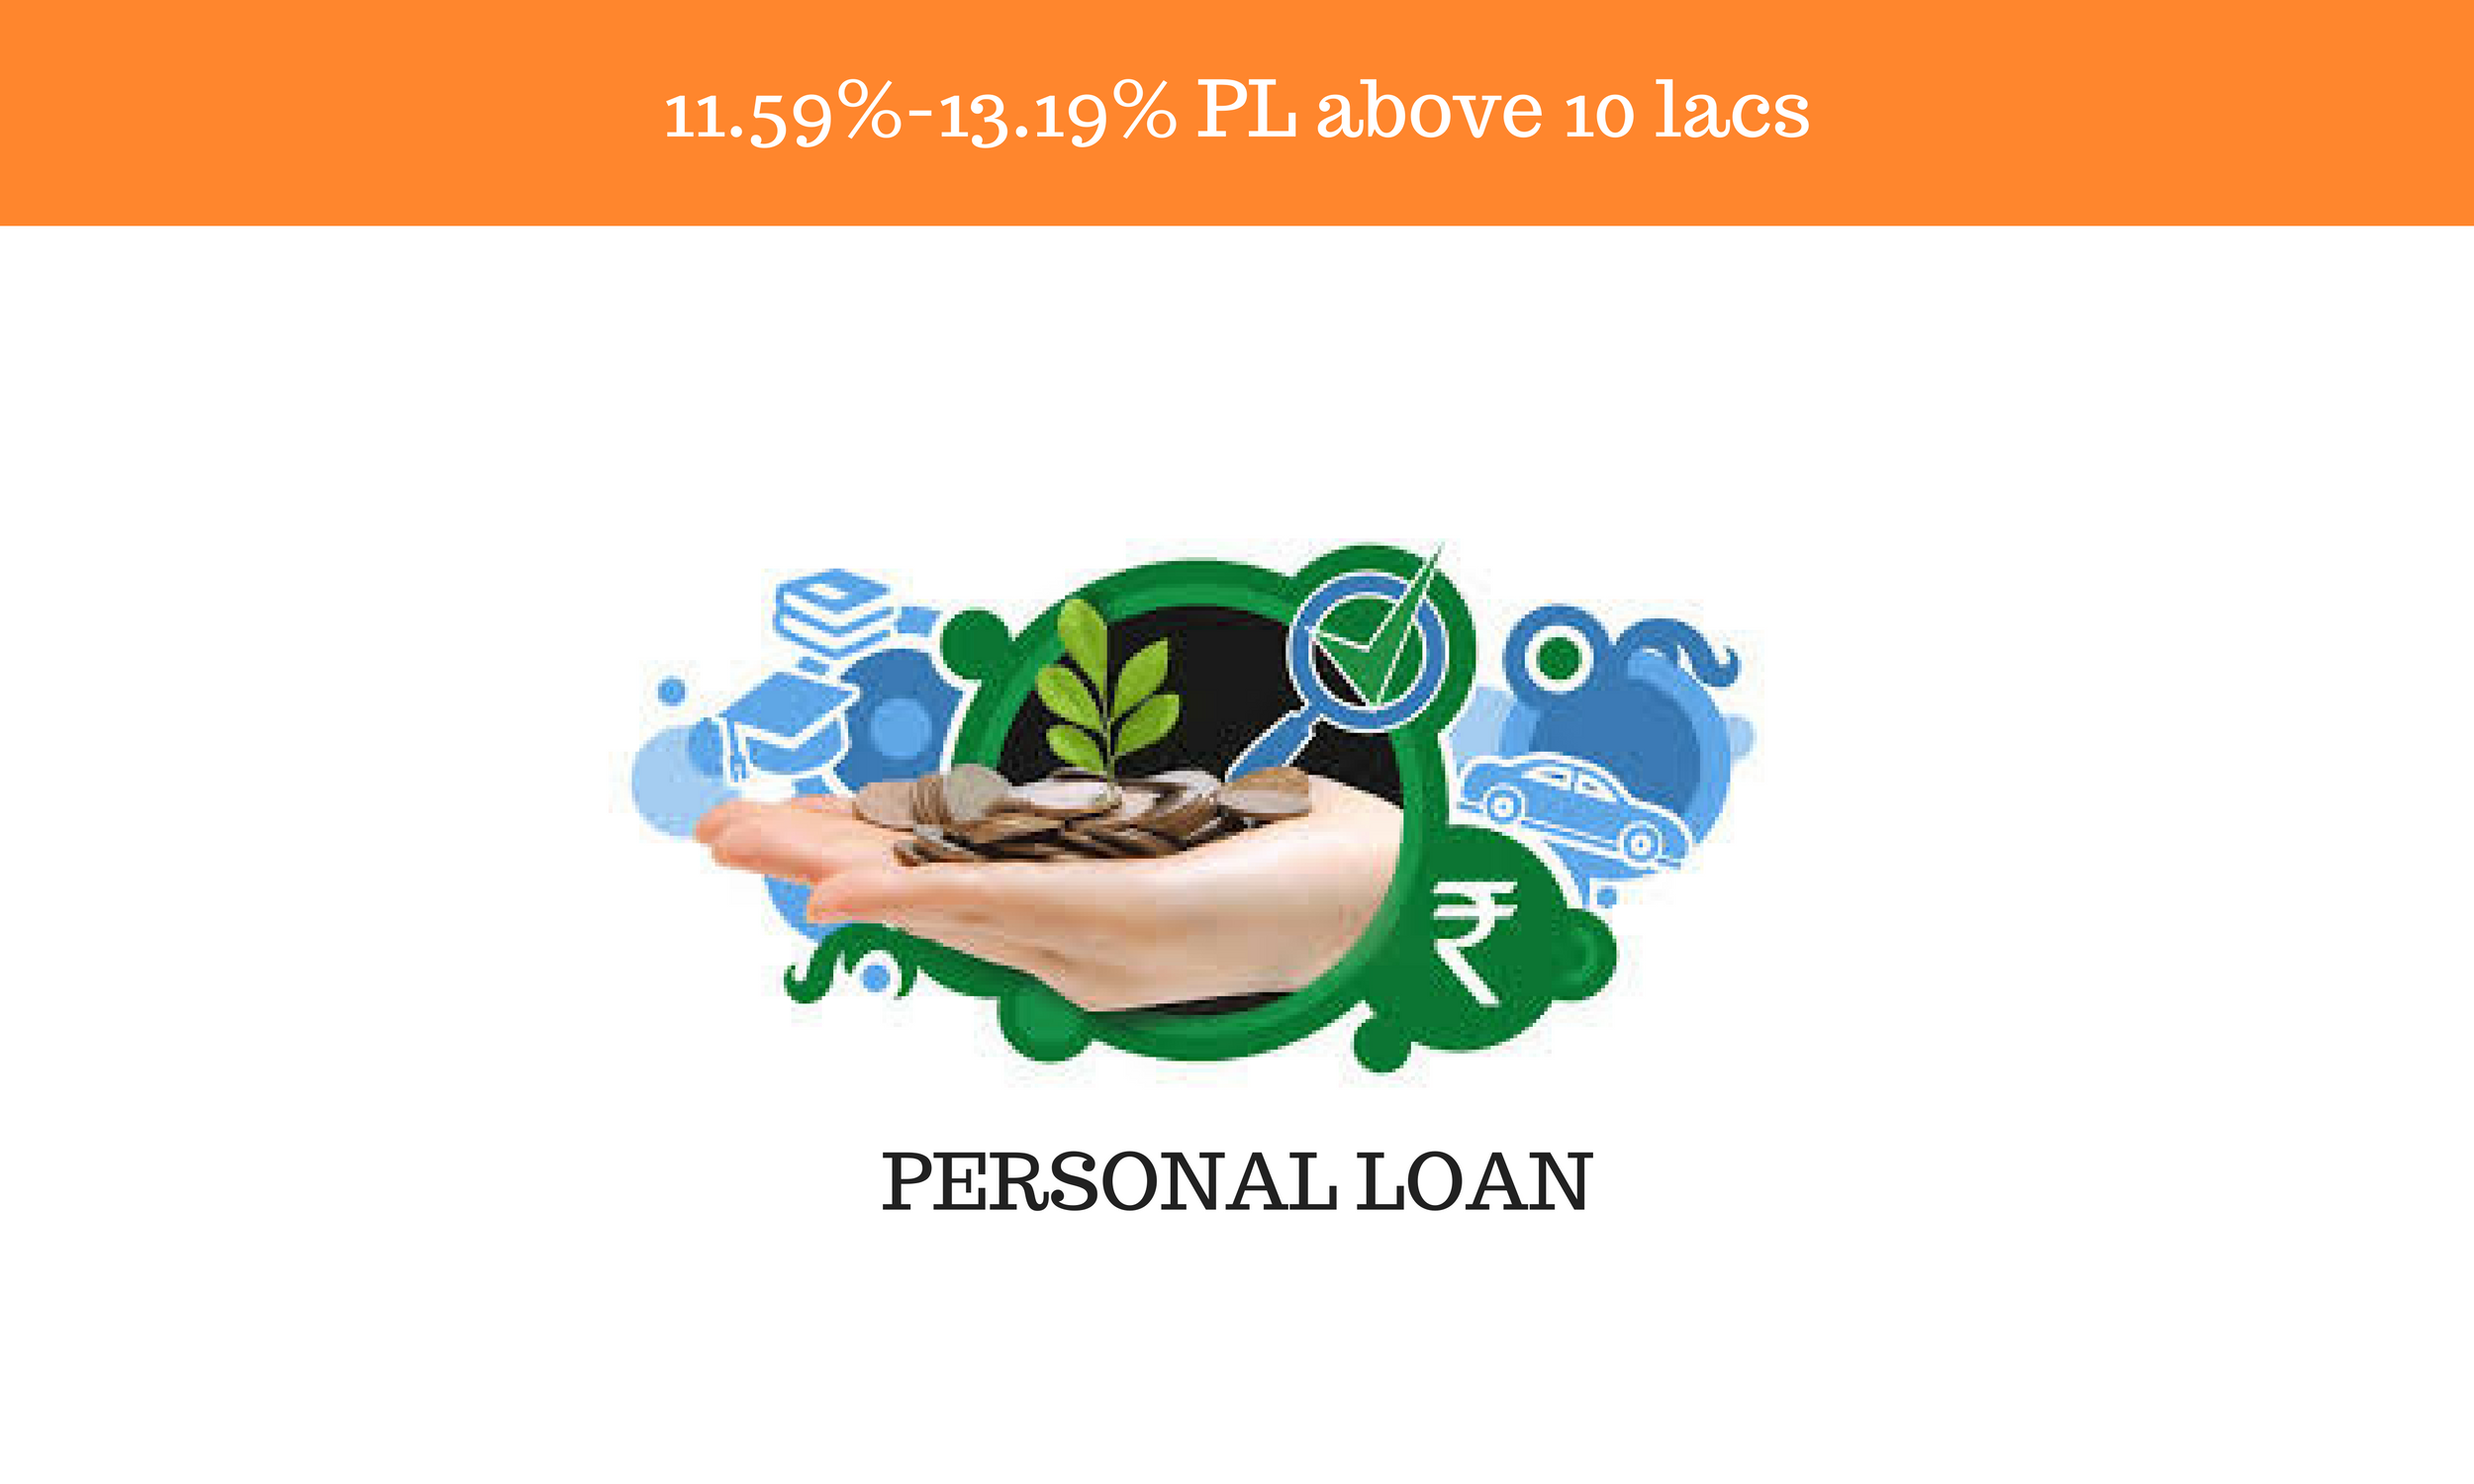 11.59% - 13.19% rate for PL above 10 lacs